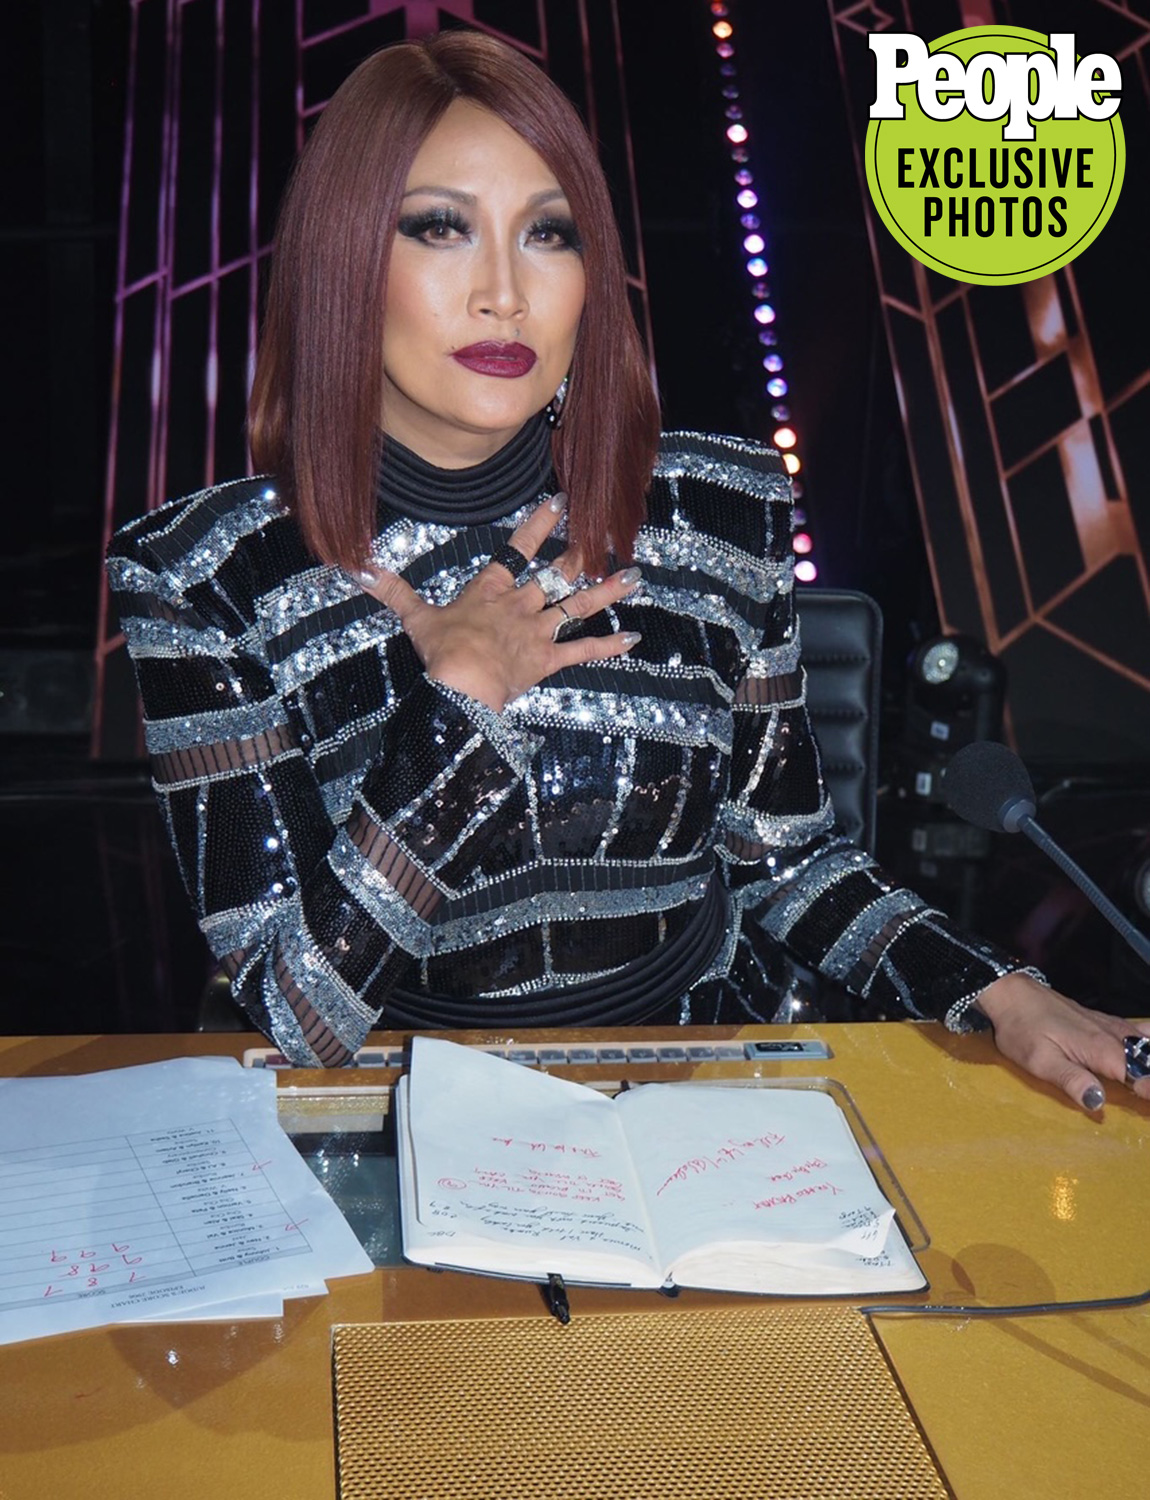 Carrie Ann Inaba Boob - Boobs And Cock